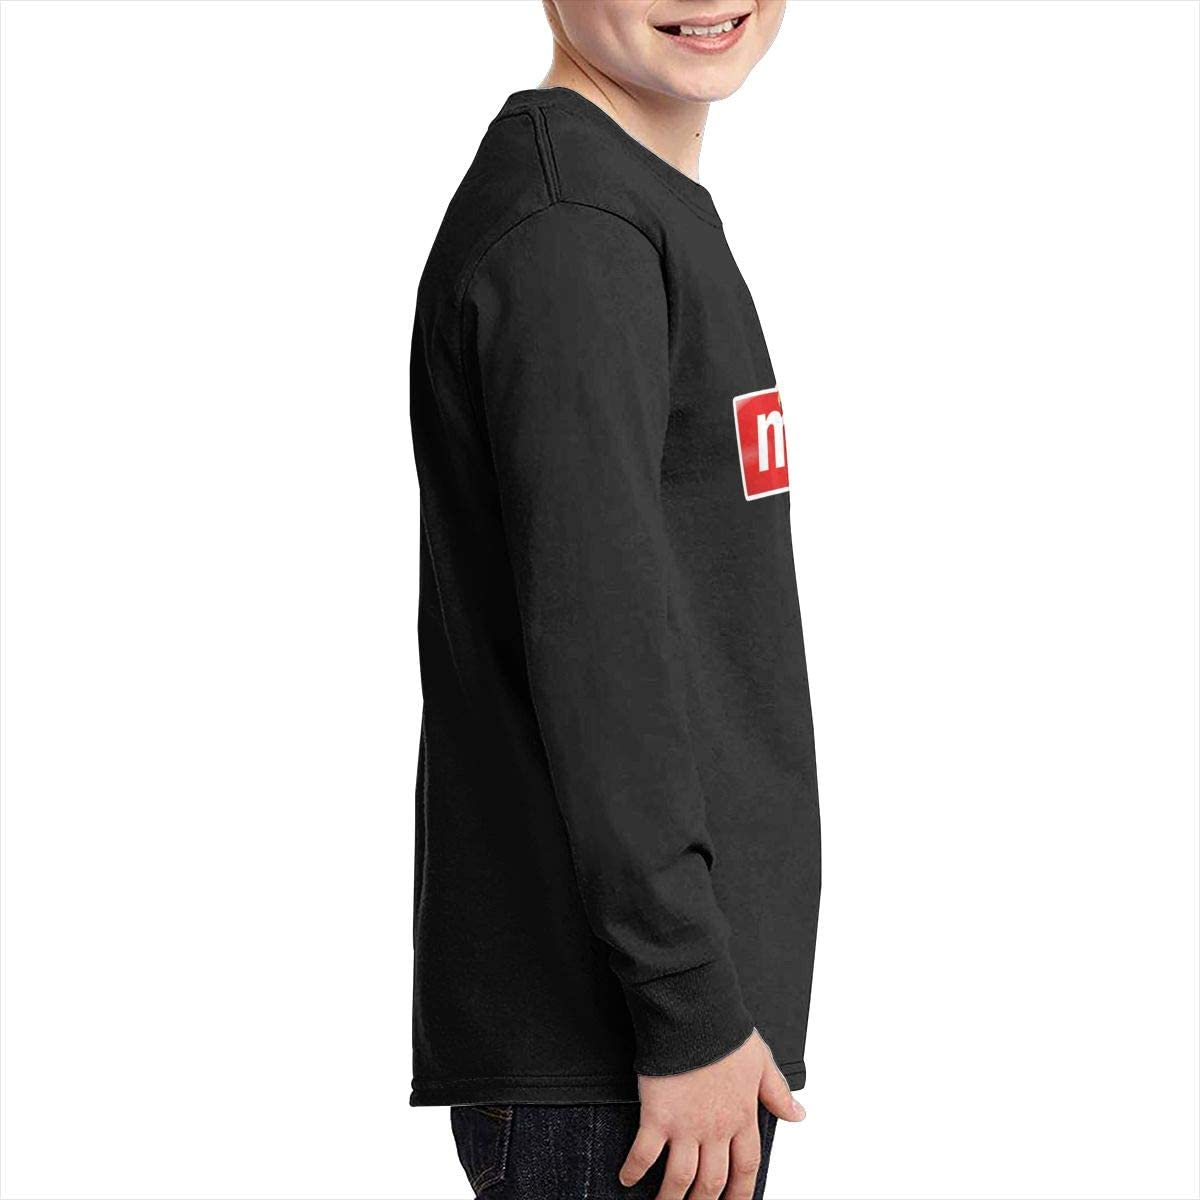 Cute Cat Hanging On Meow Youth Long Sleeve Shirts for Boys Or Girls